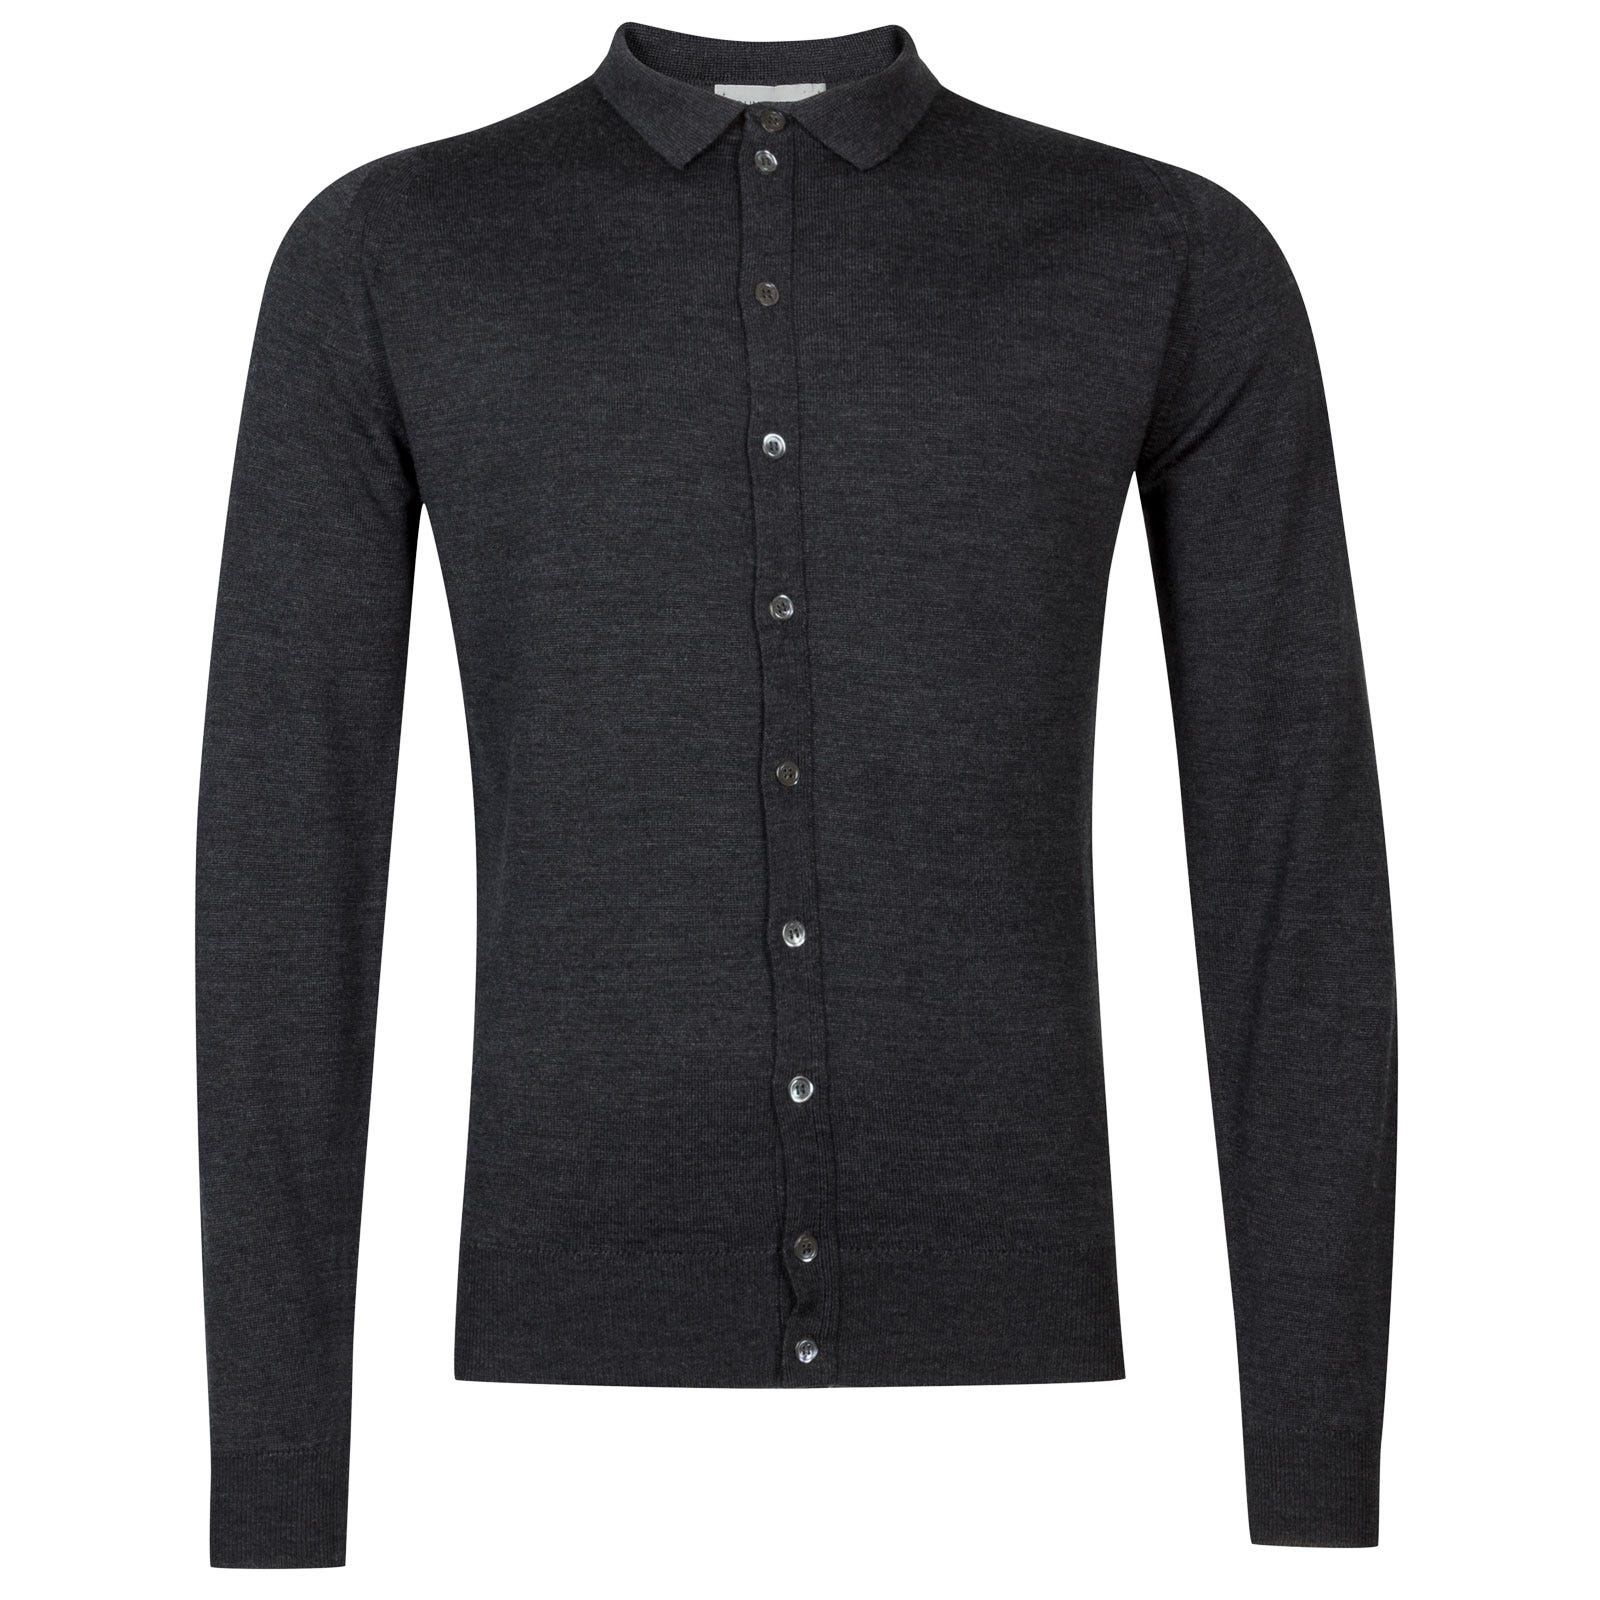 John Smedley parwish Merino Wool Shirt in Charcoal-M